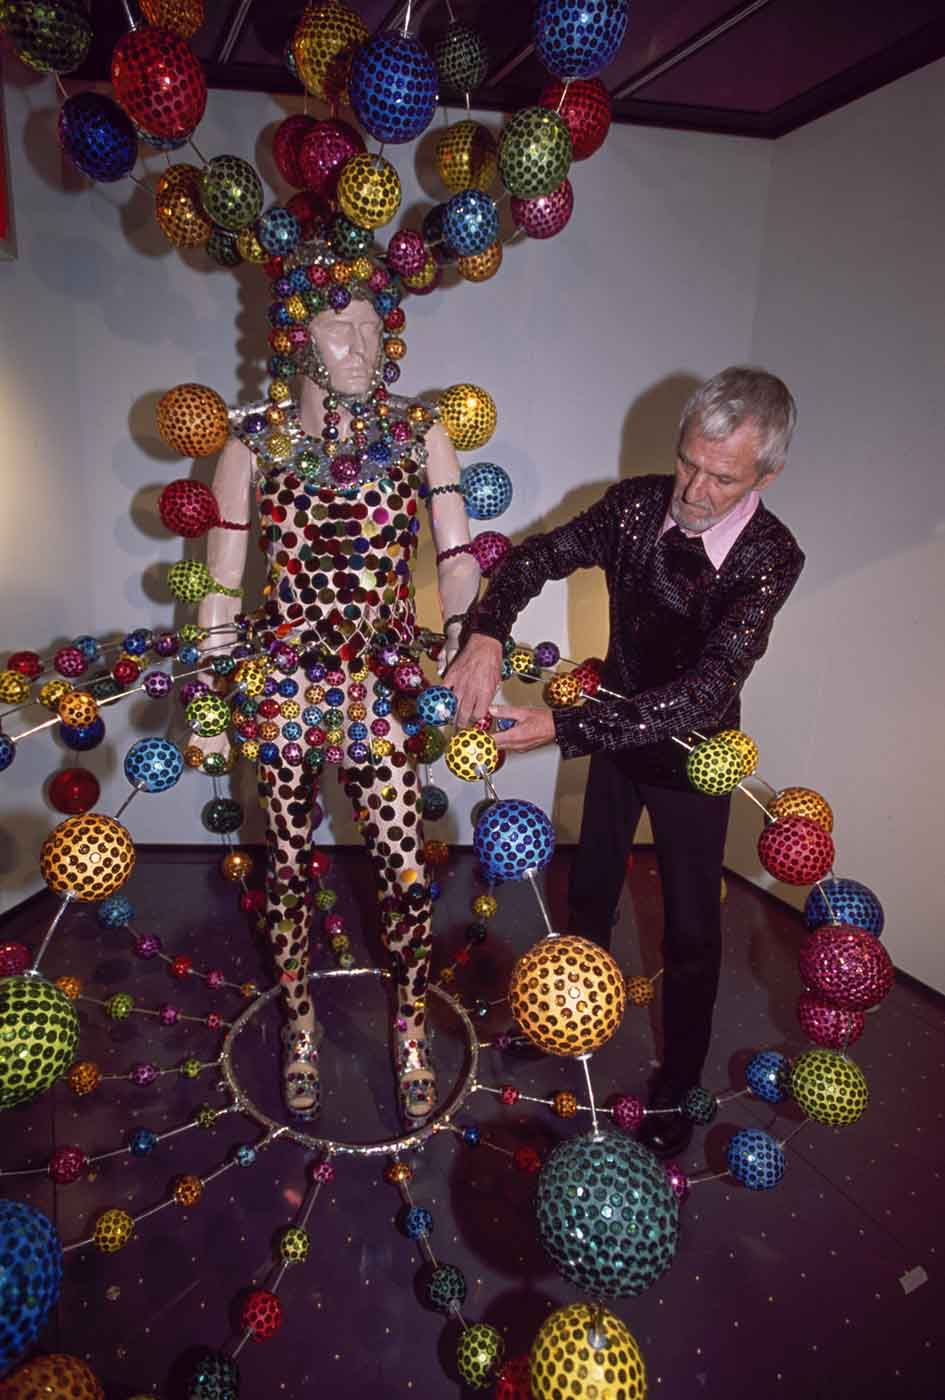 Man attaching sequinned ball to costume